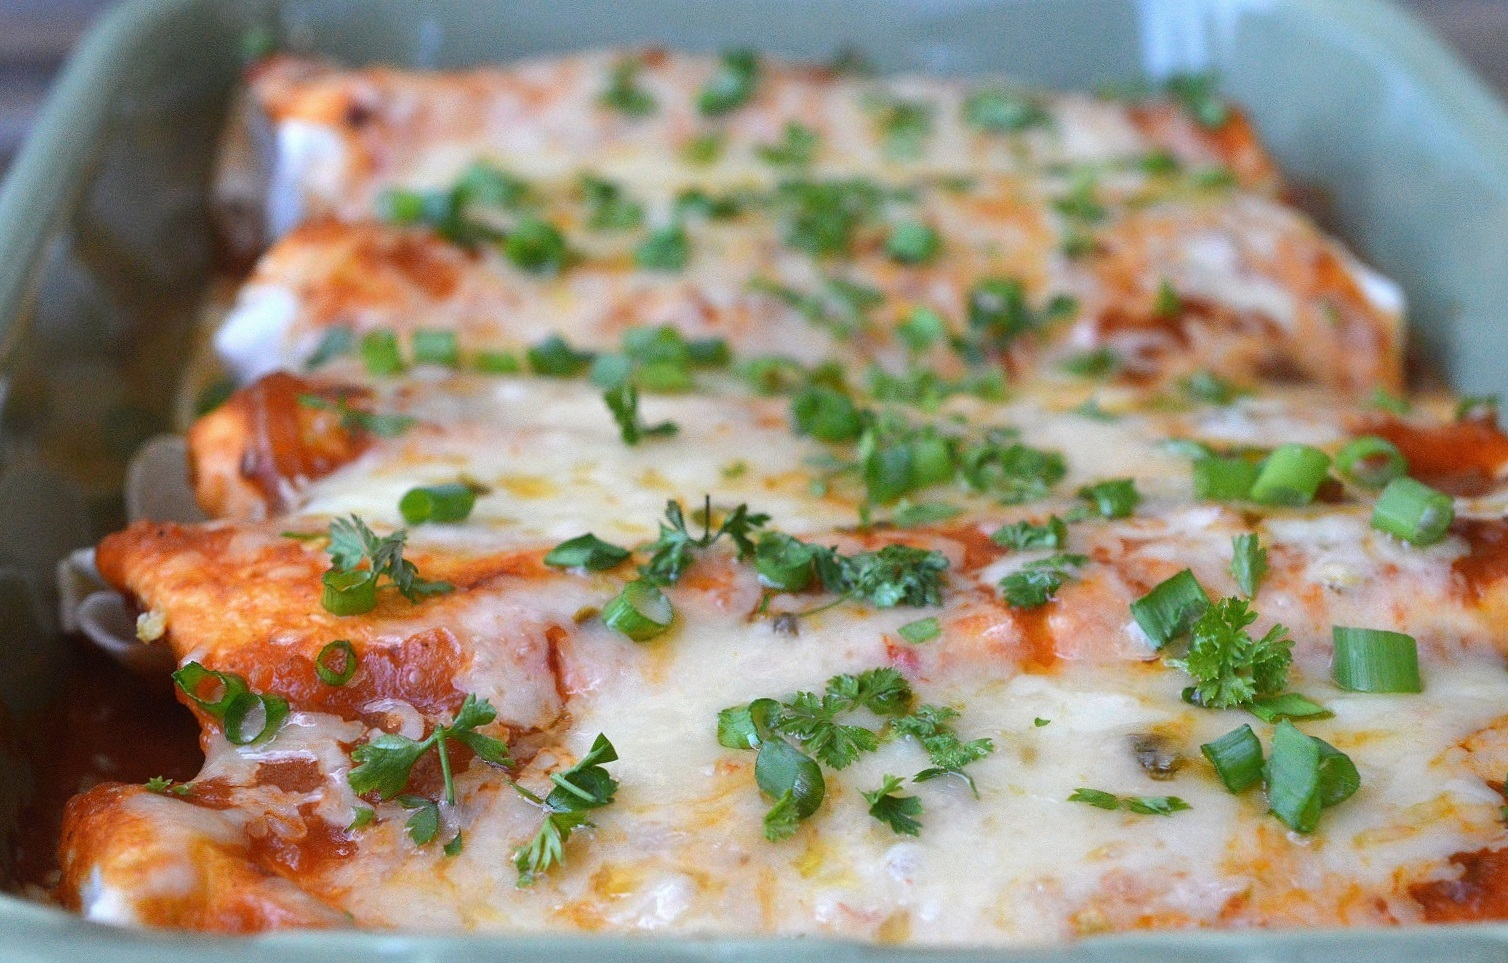 Incredibly delicious recipe for Beef Enchiladas with homemade sauce. You want these in your life!